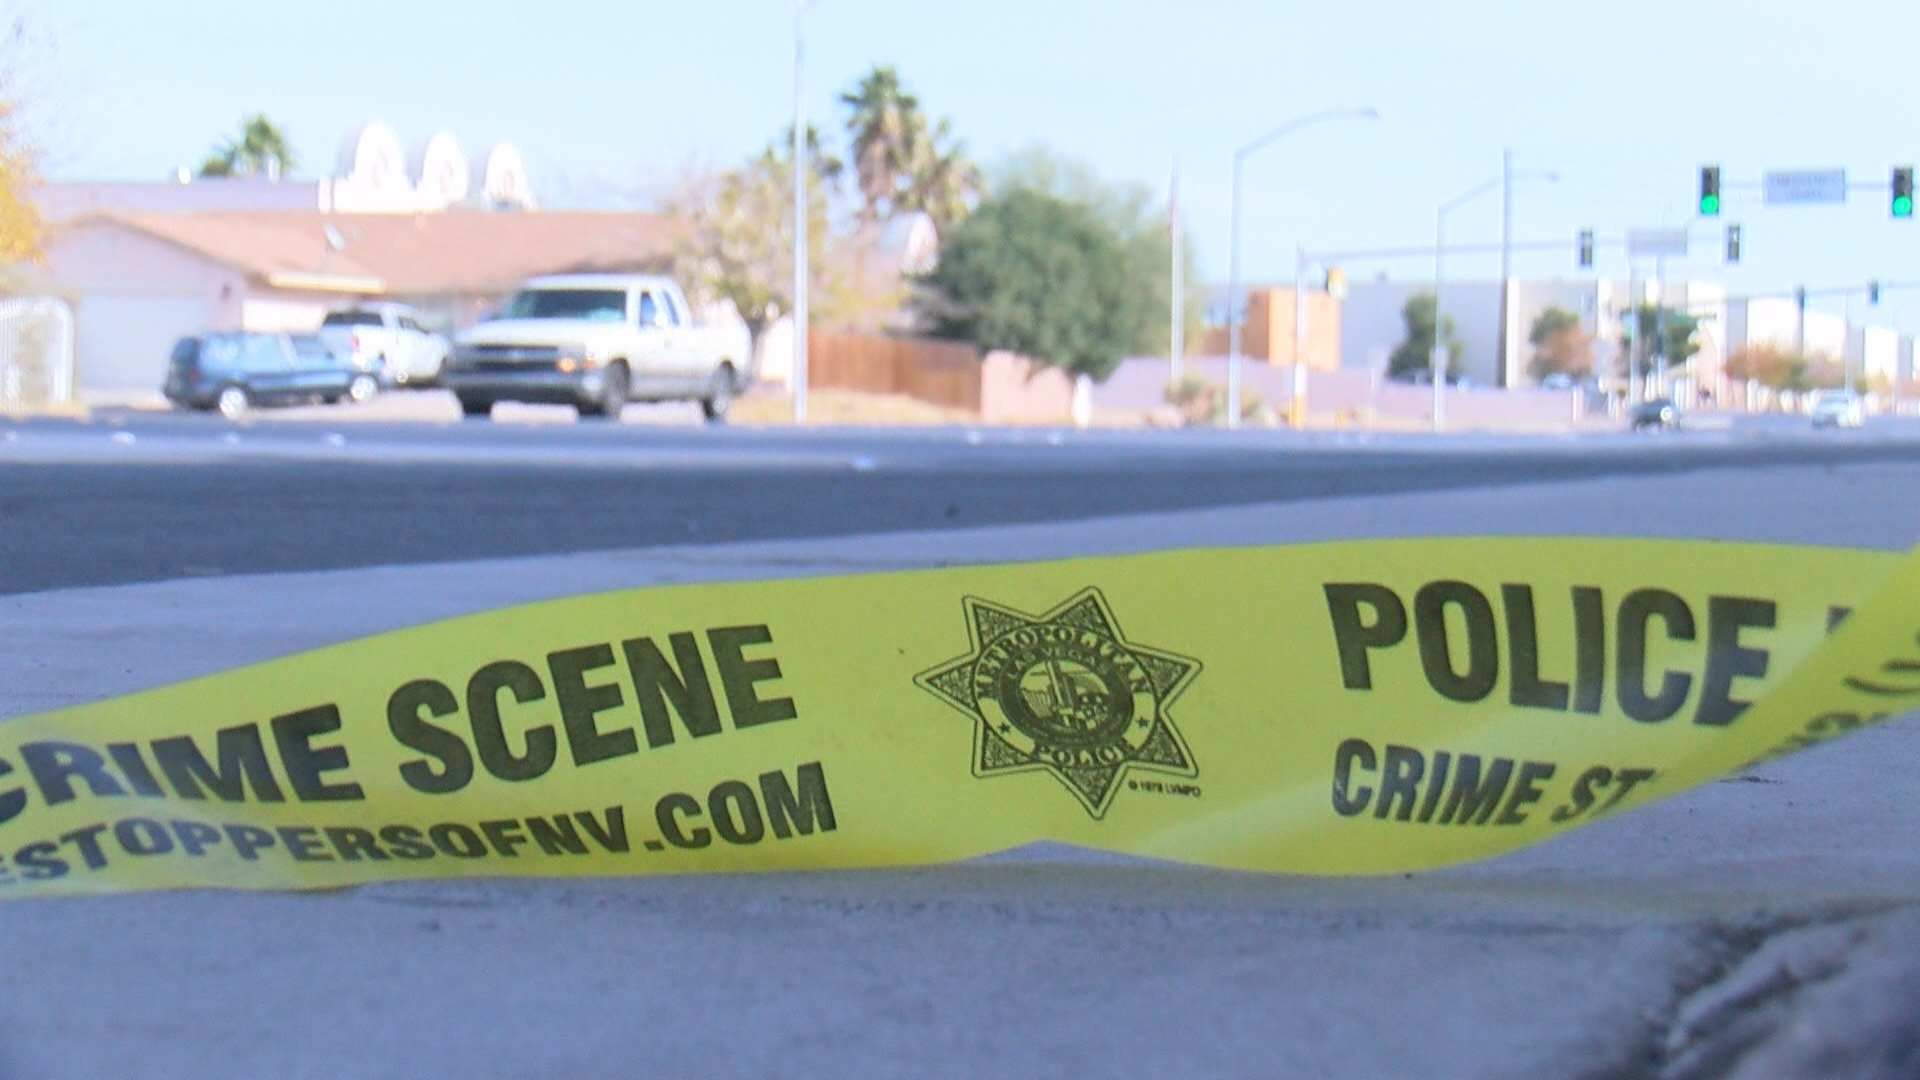 A man was shot and killed after trying to break into a car with a family inside on New Year's Eve near Alexander and Lamb. (KSNV)